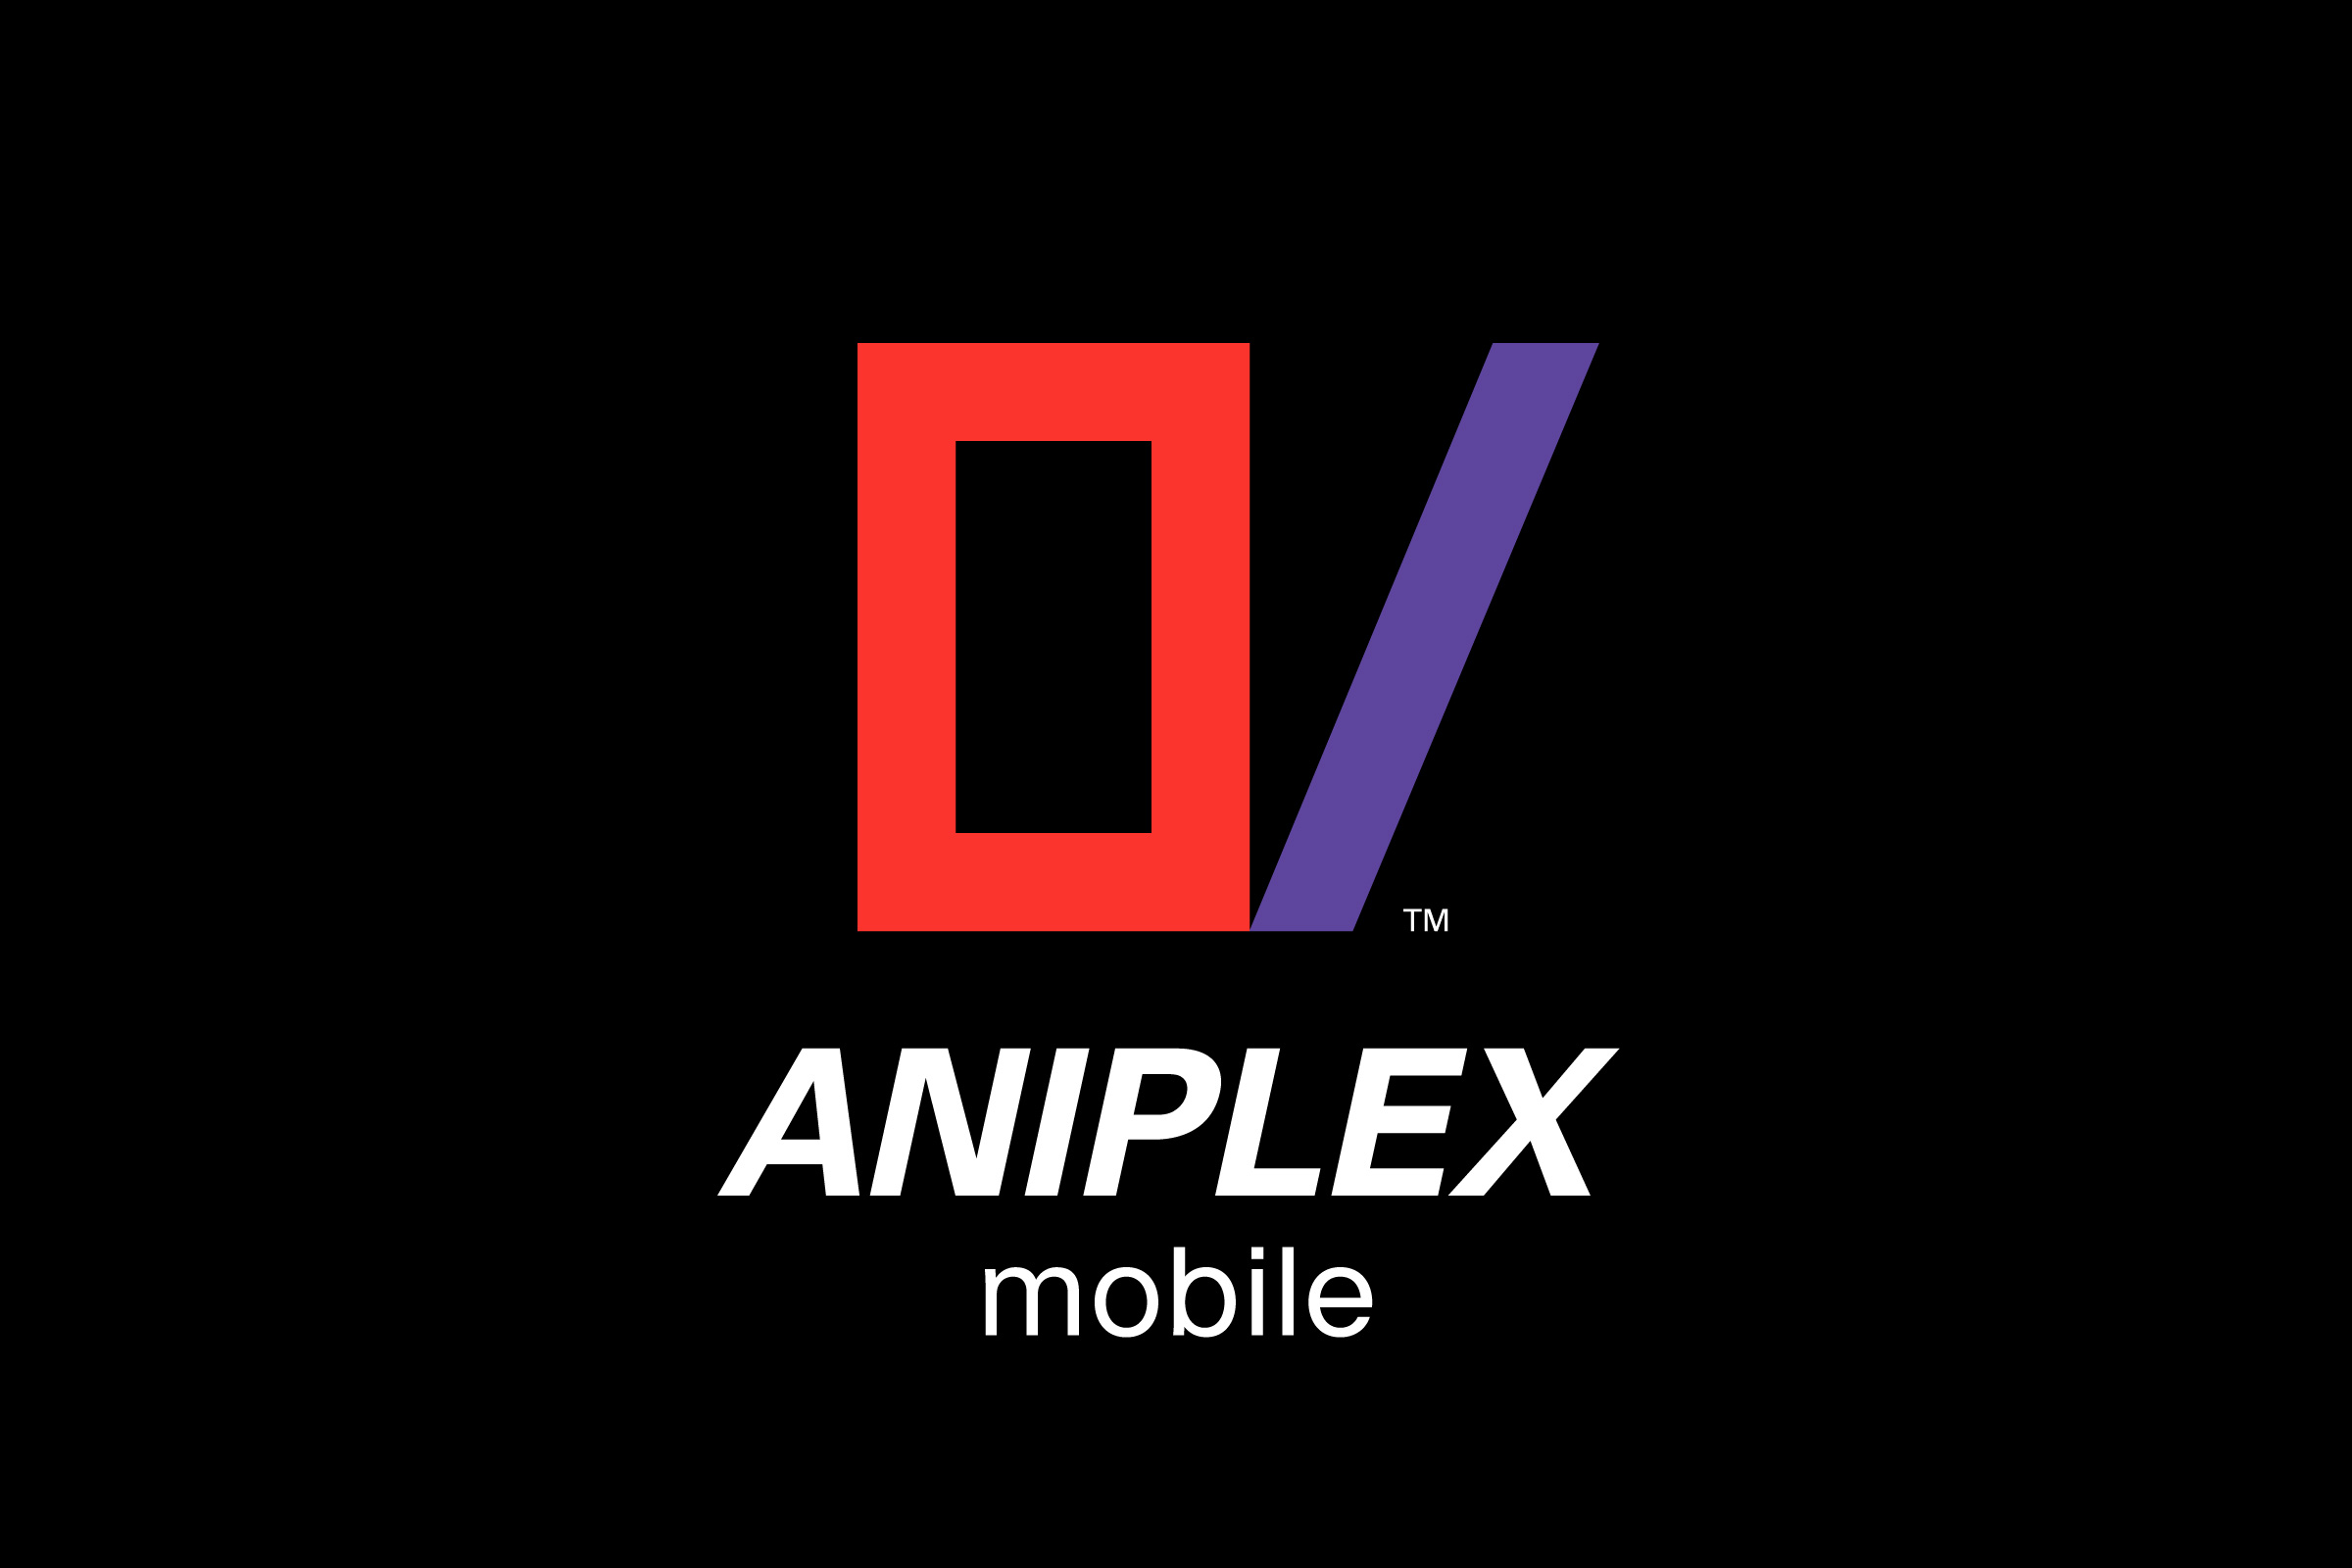 Aniplex Mobile